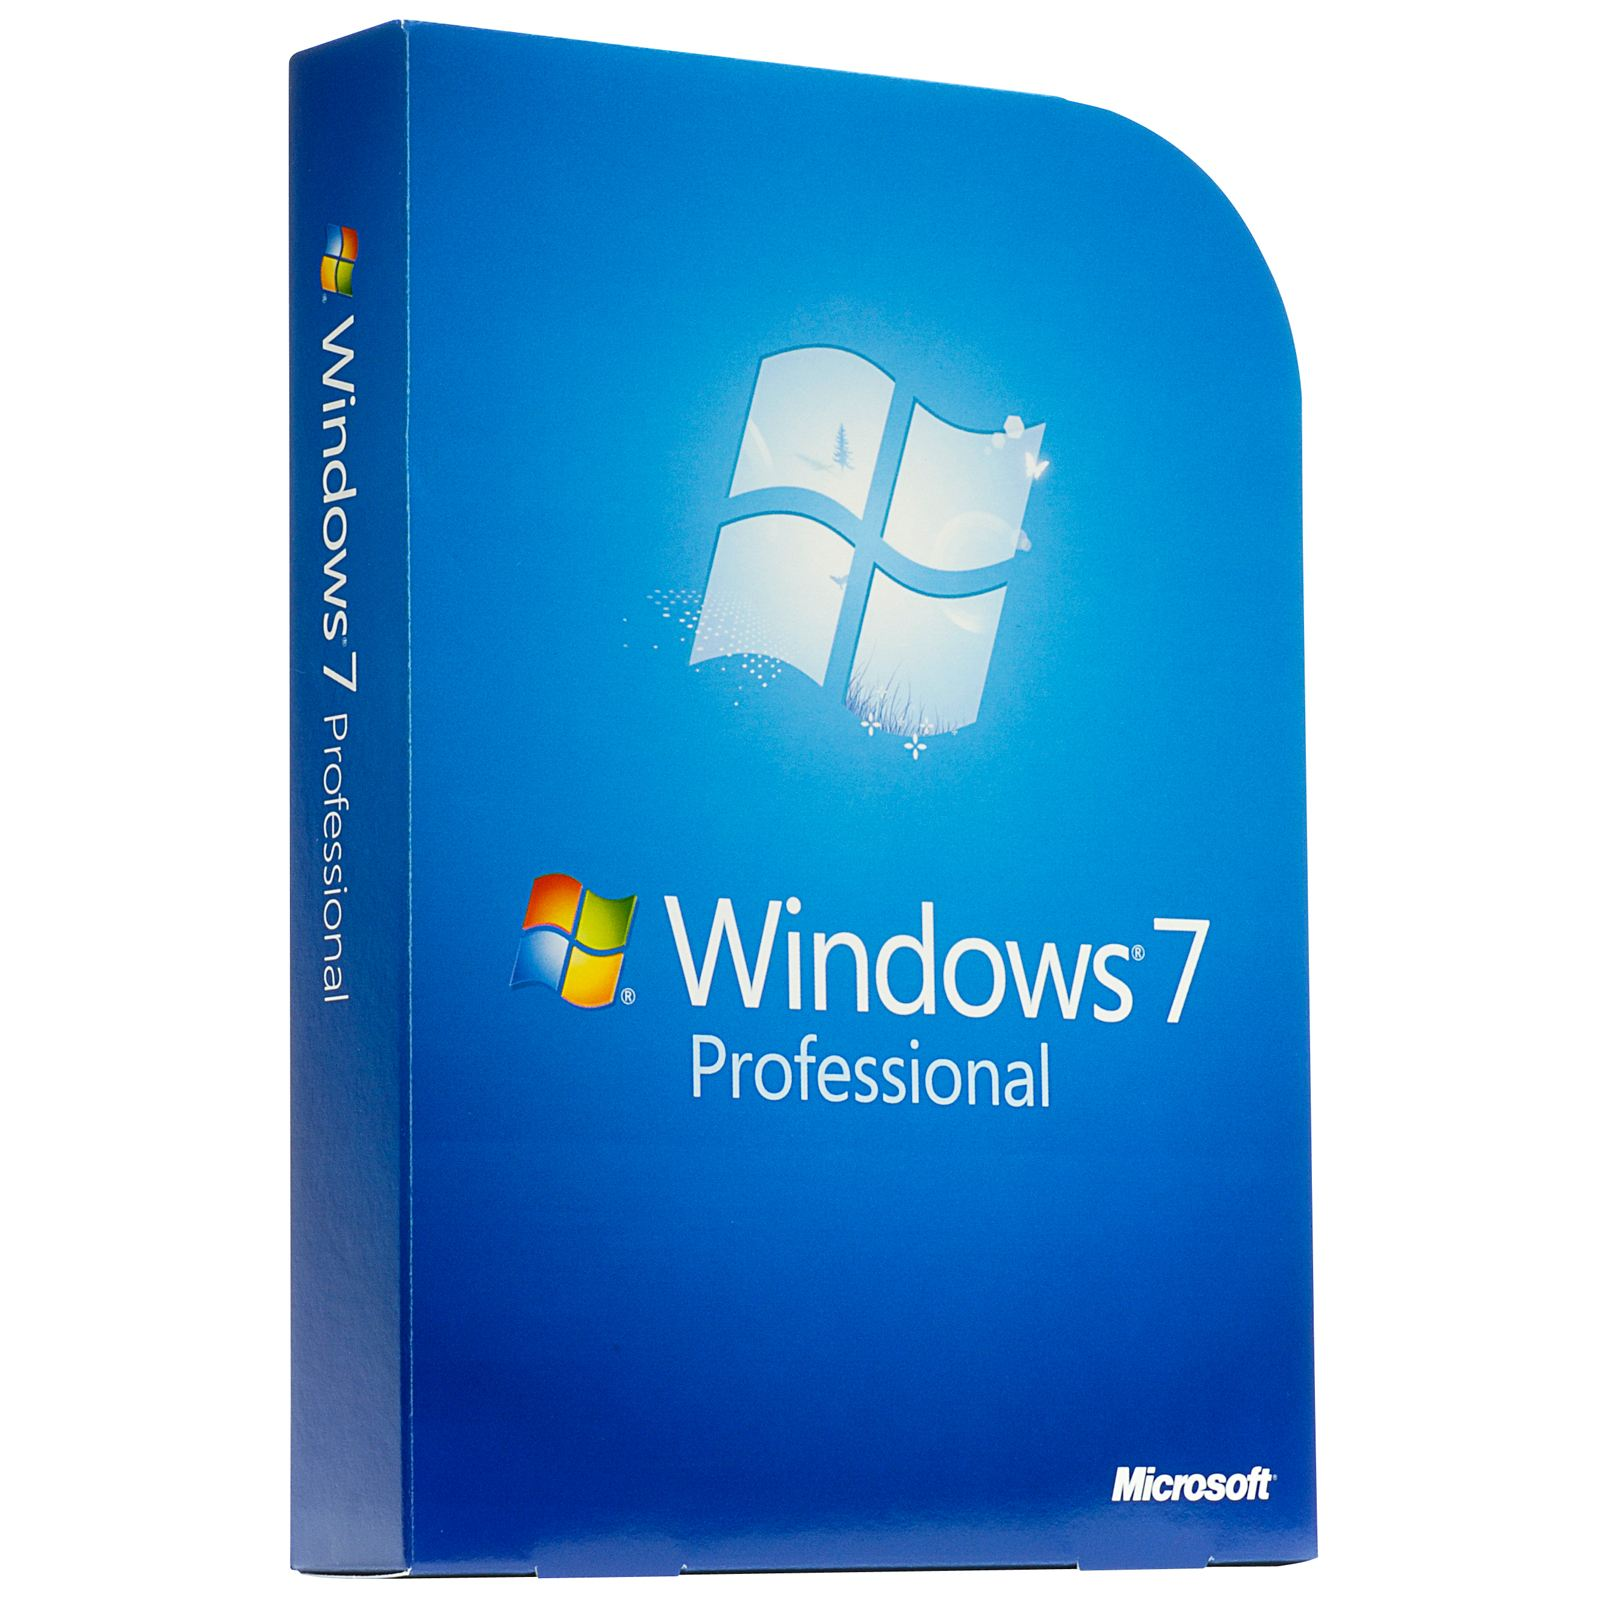 Windows 7 Professional 64bit OEM polski